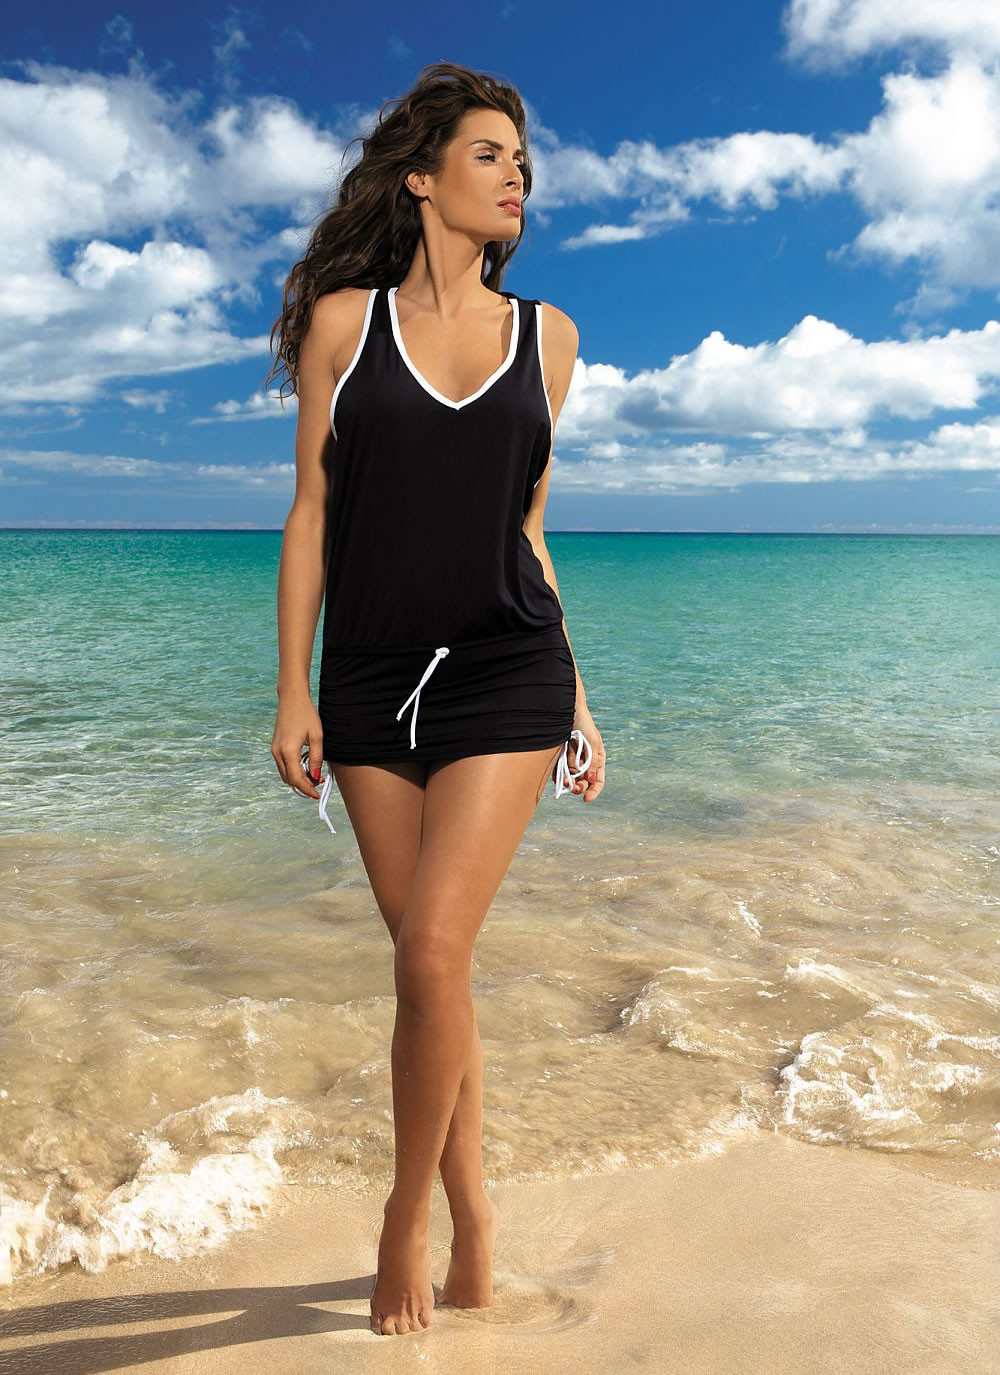 Elsa Sporty Beach Dress - Black